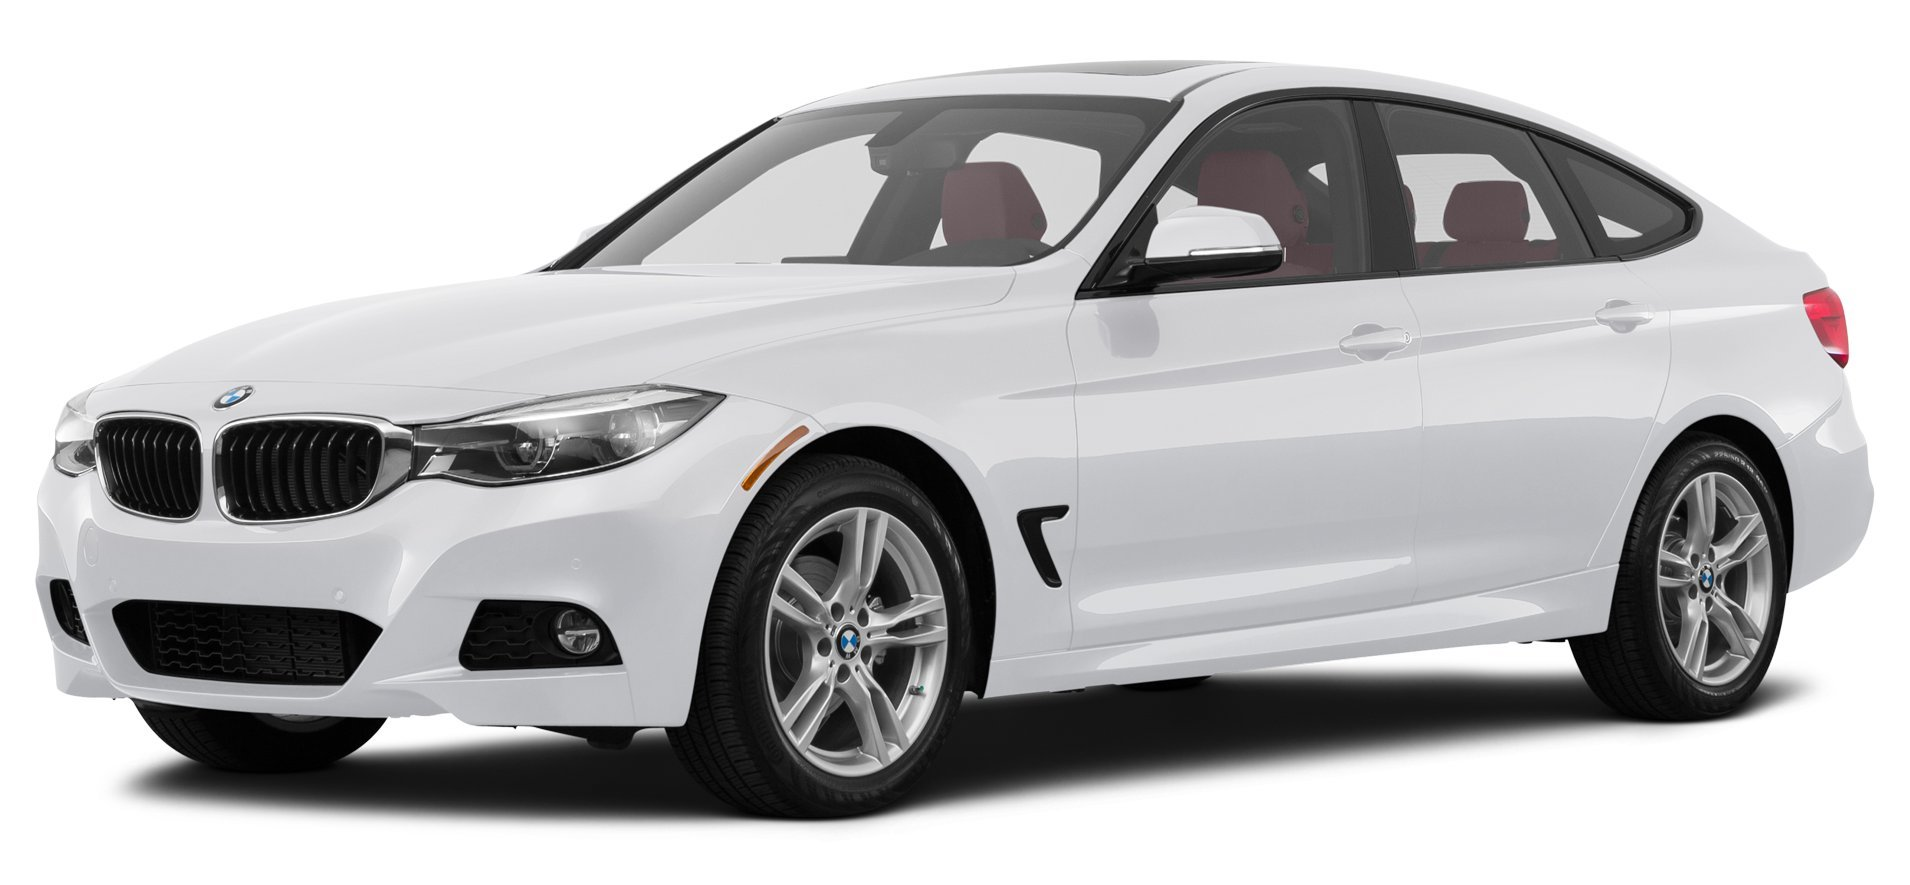 2017 bmw 330i gt xdrive reviews images and specs vehicles. Black Bedroom Furniture Sets. Home Design Ideas